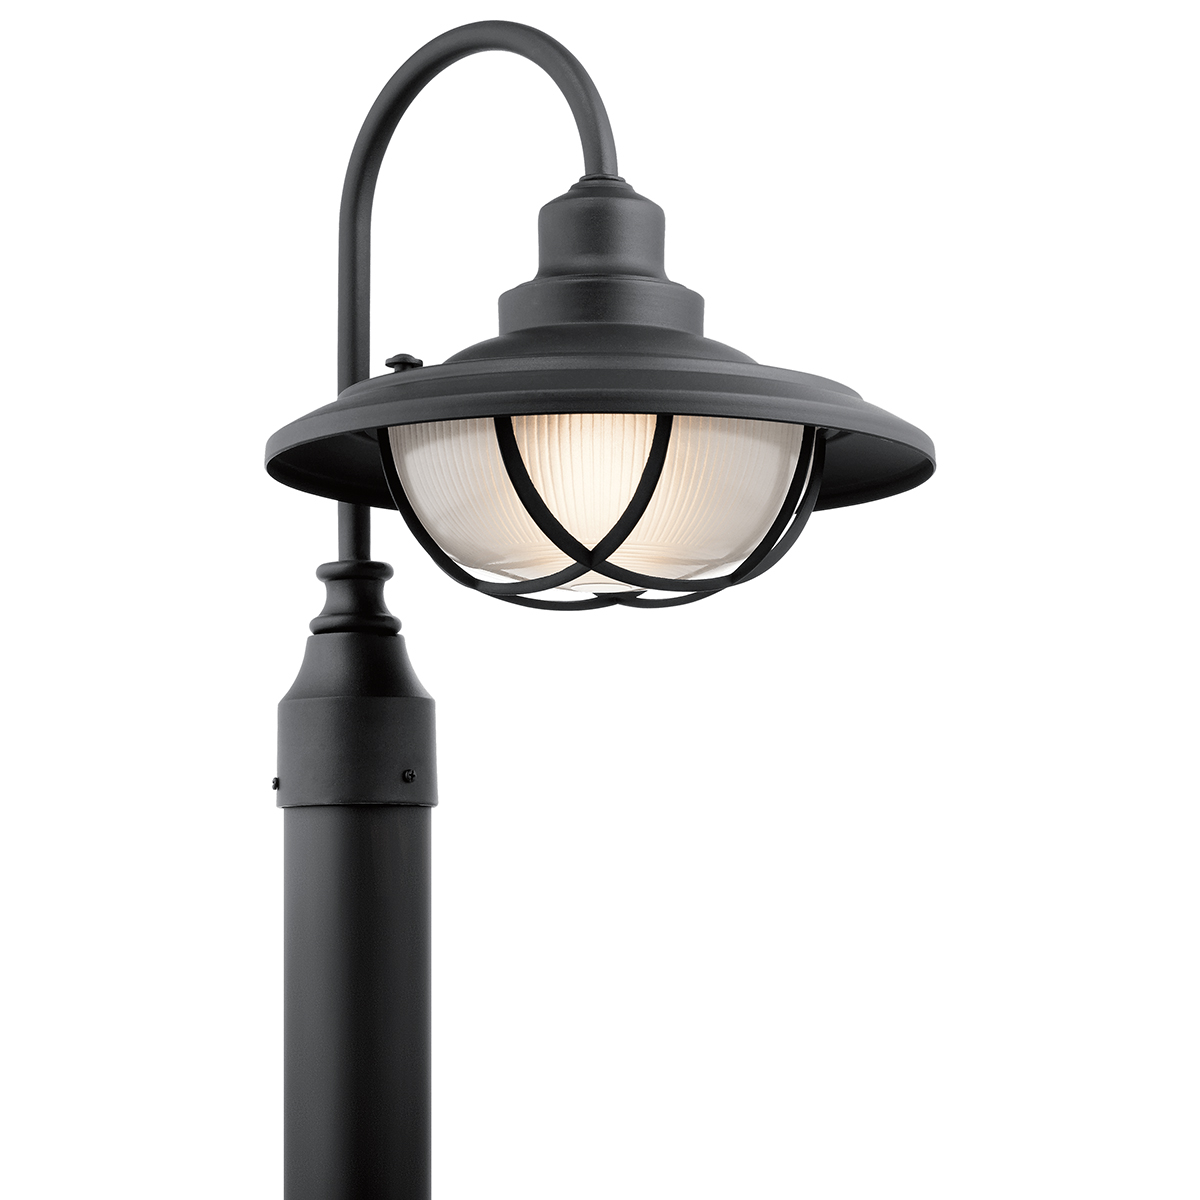 Kichler Lighting (49694BKT) Harvest Ridge 1 Light Outdoor Post Mount  Lantern In Textured Black